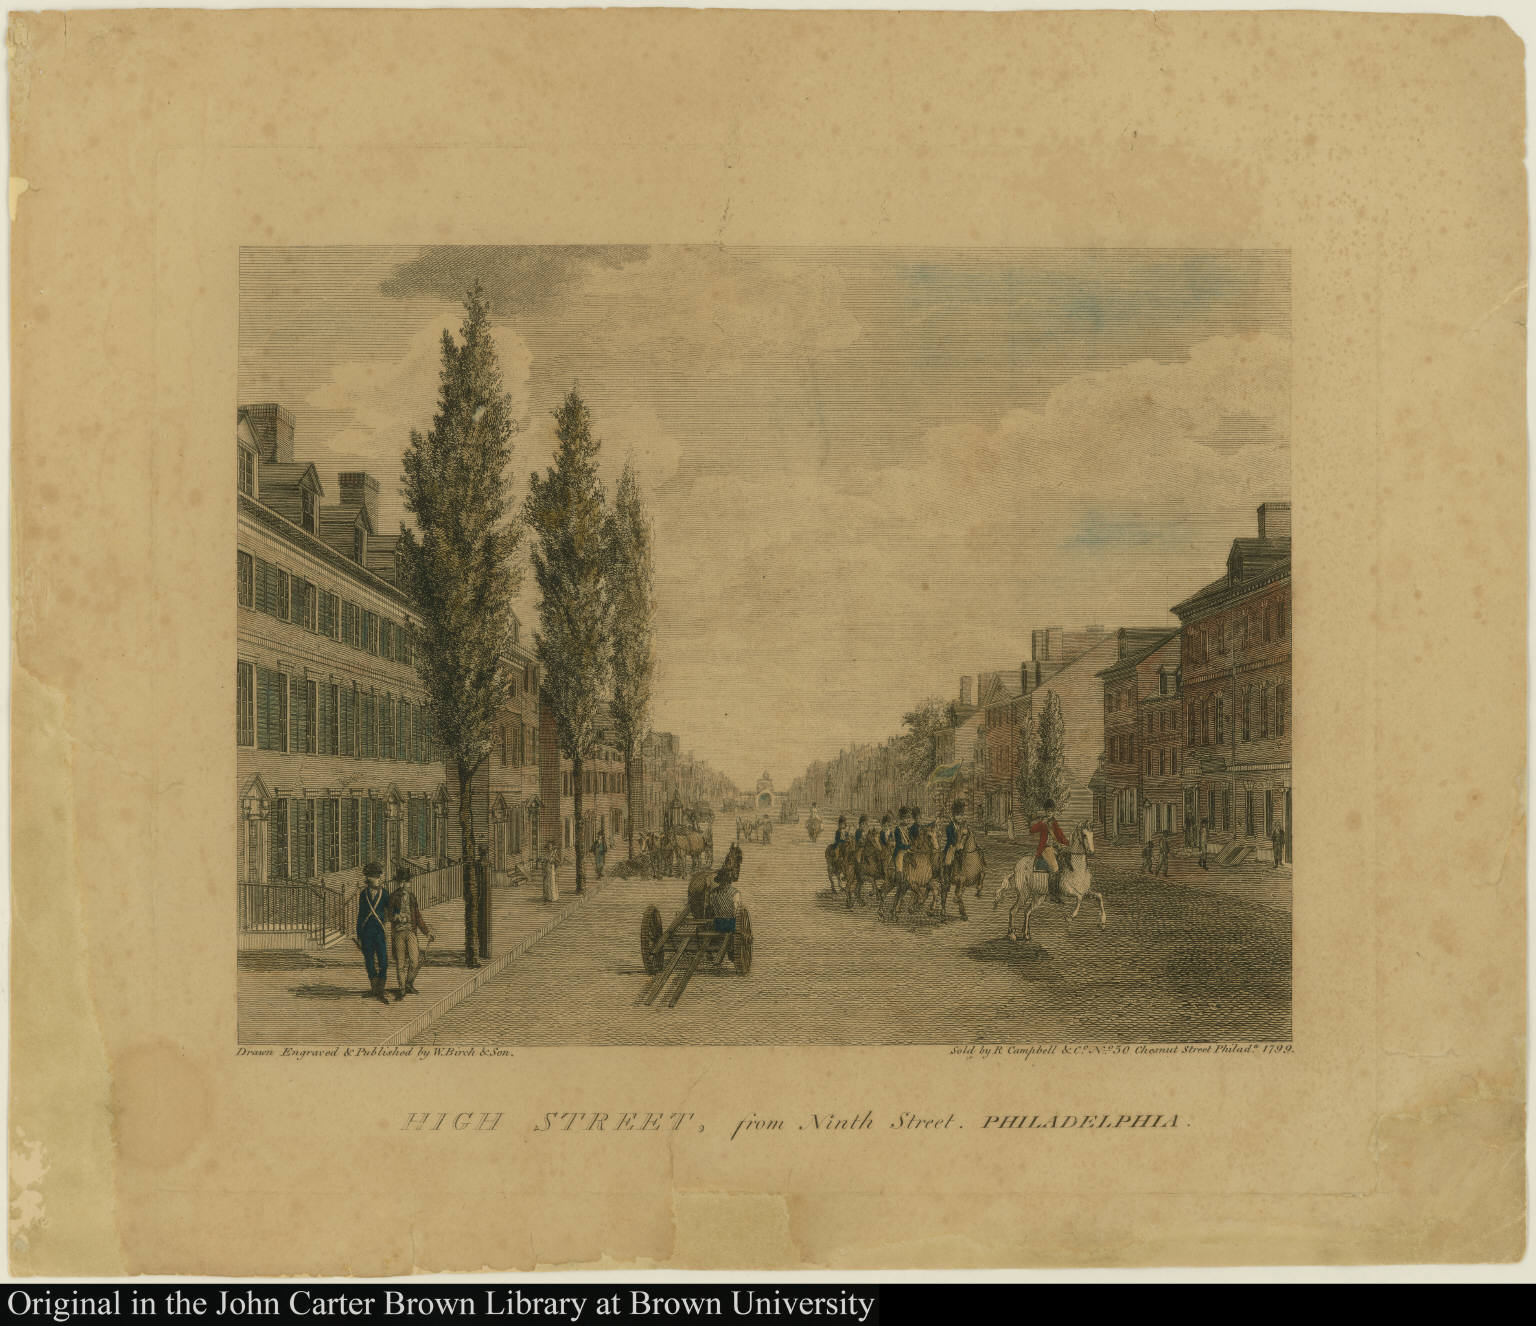 High Street, from Ninth Street, Philadelphia